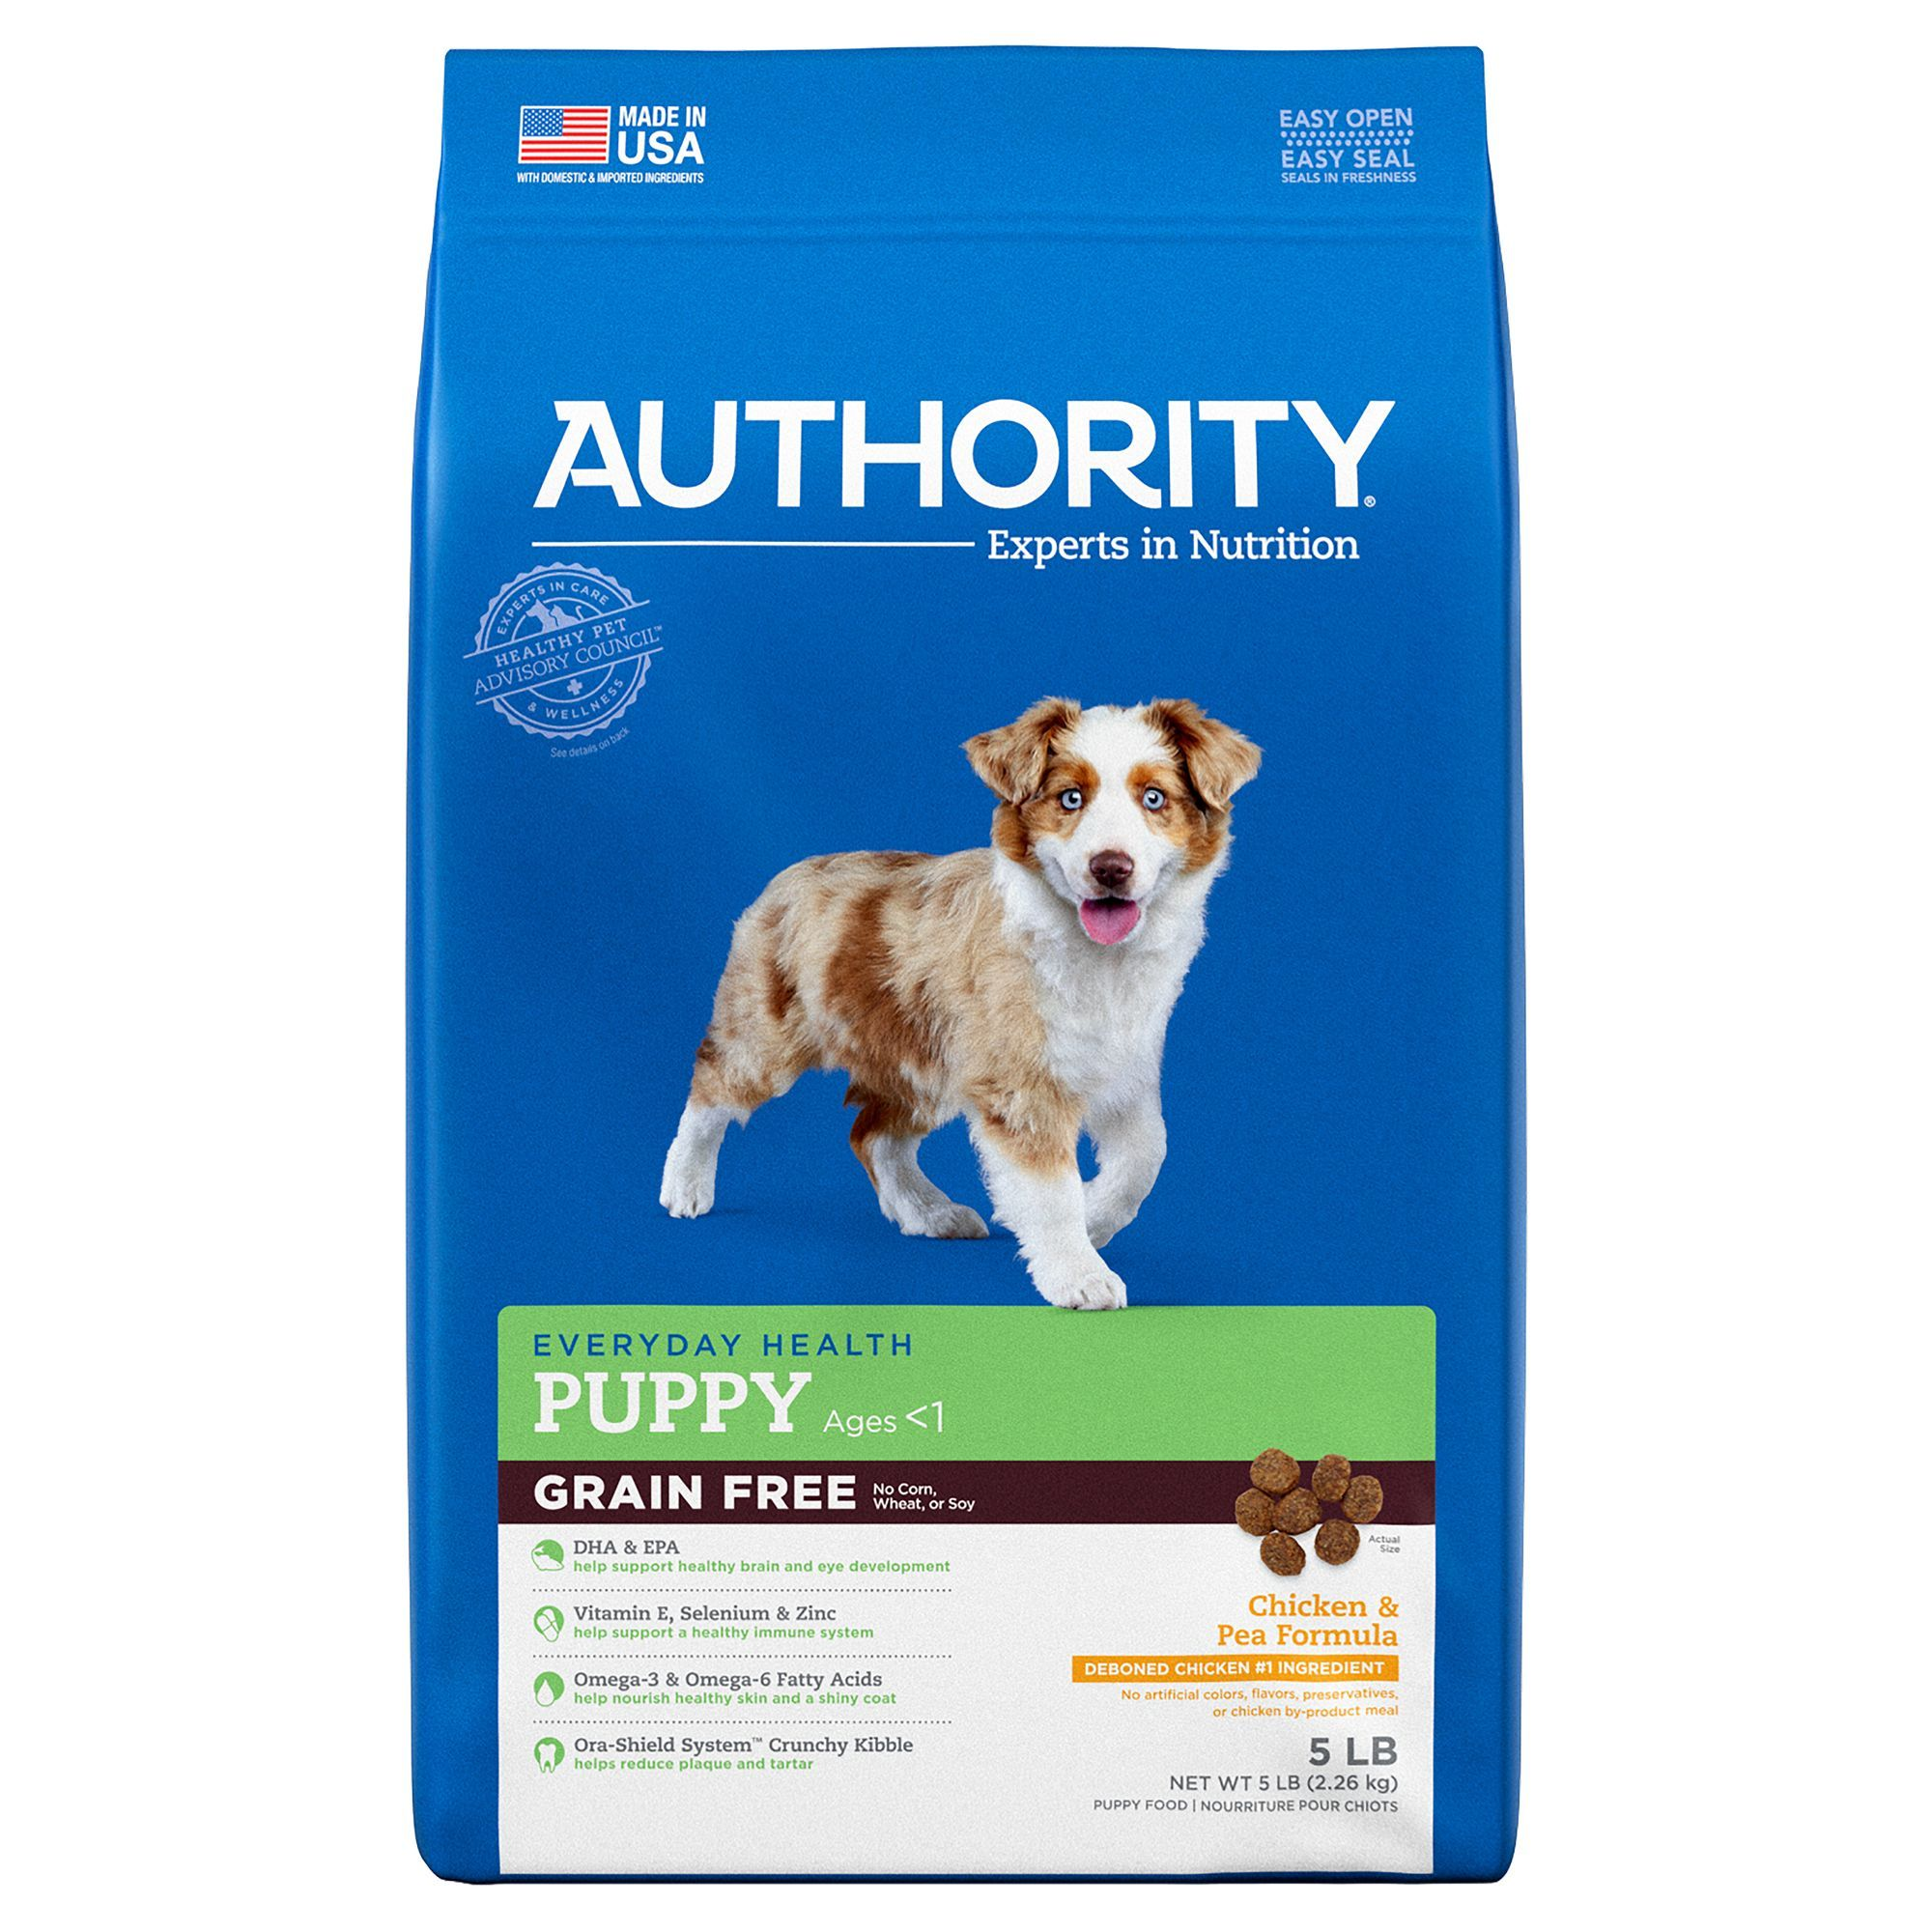 Authority Puppy Food Grain Free Chicken And Pea Size 5 Lb